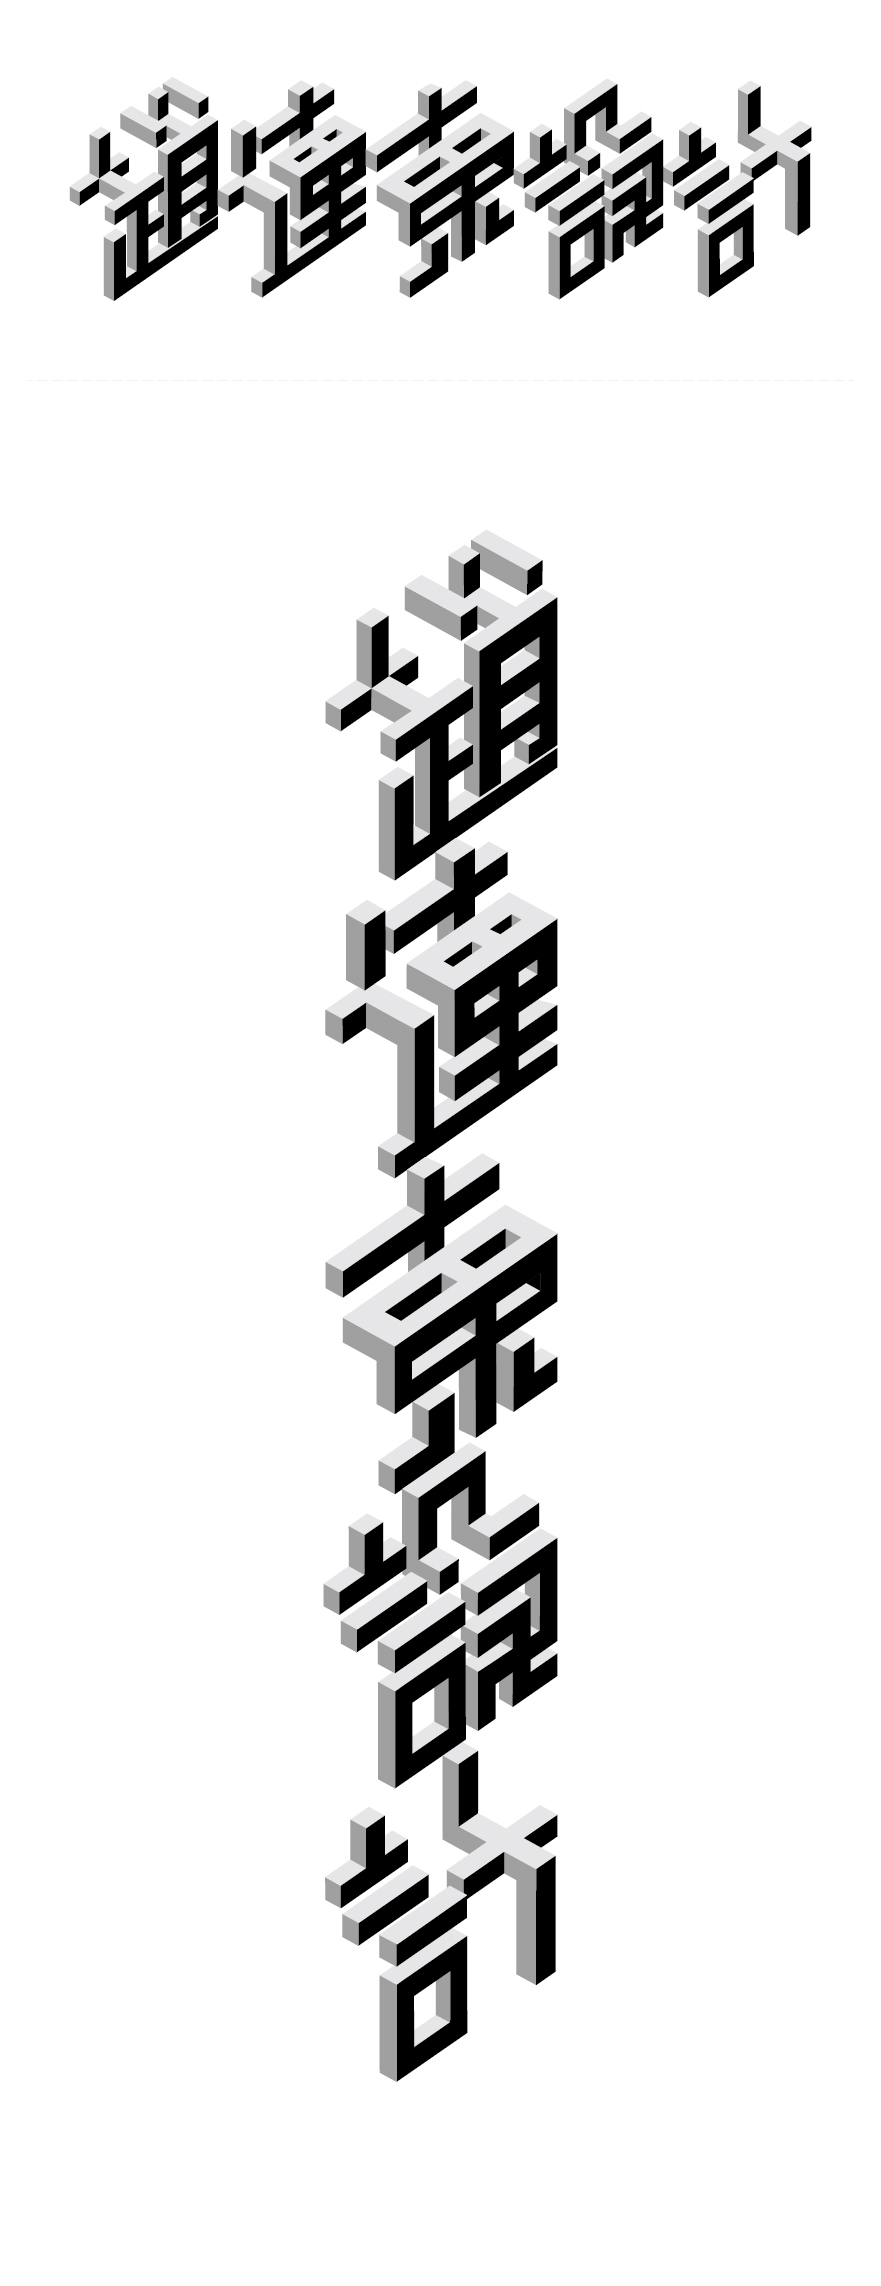 chinesefontdesign.com 2016 07 17 20 25 24 100+ Examples Of Creative Chinese Font Style Ddesign Ideas You Should See